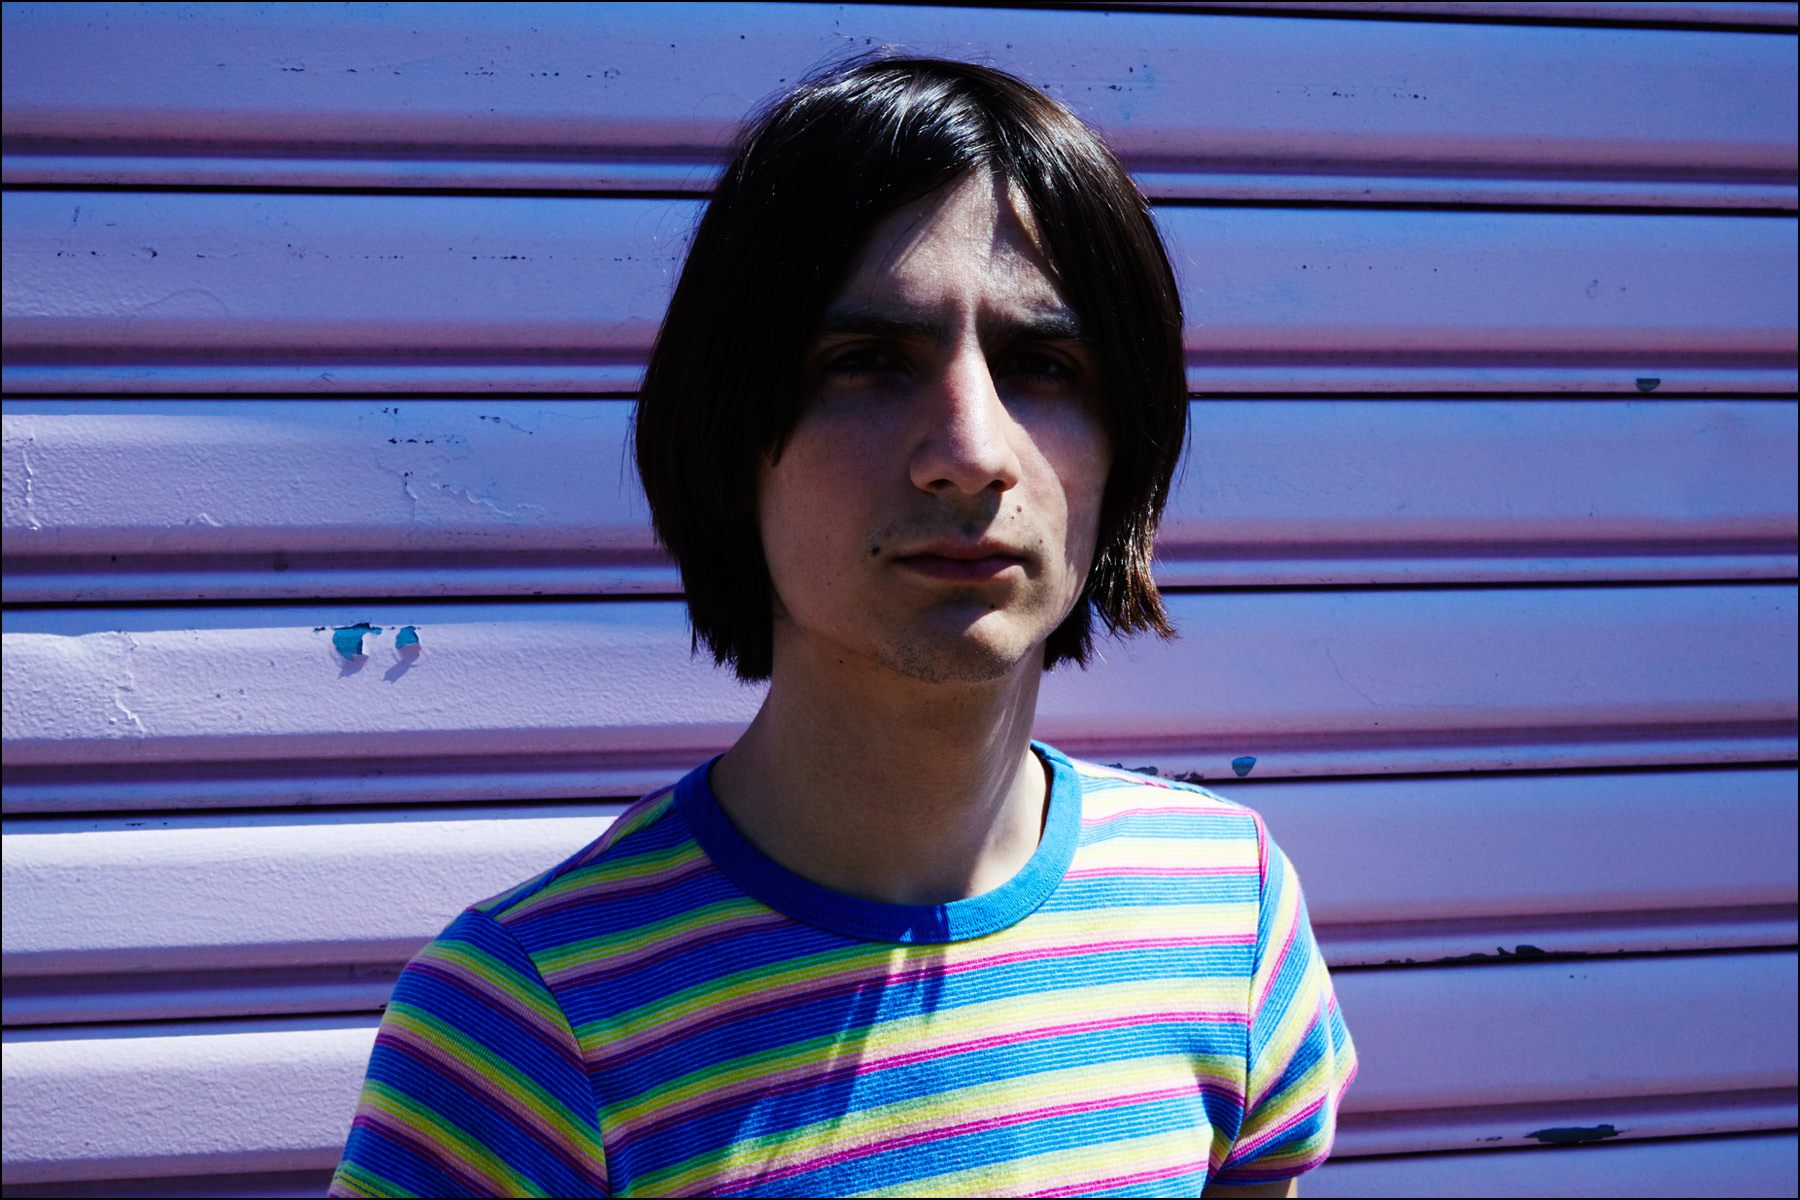 A portrait of Lemon Twigs musician Michael D'Addario by Alexander Thompson, for Ponyboy magazine New York.